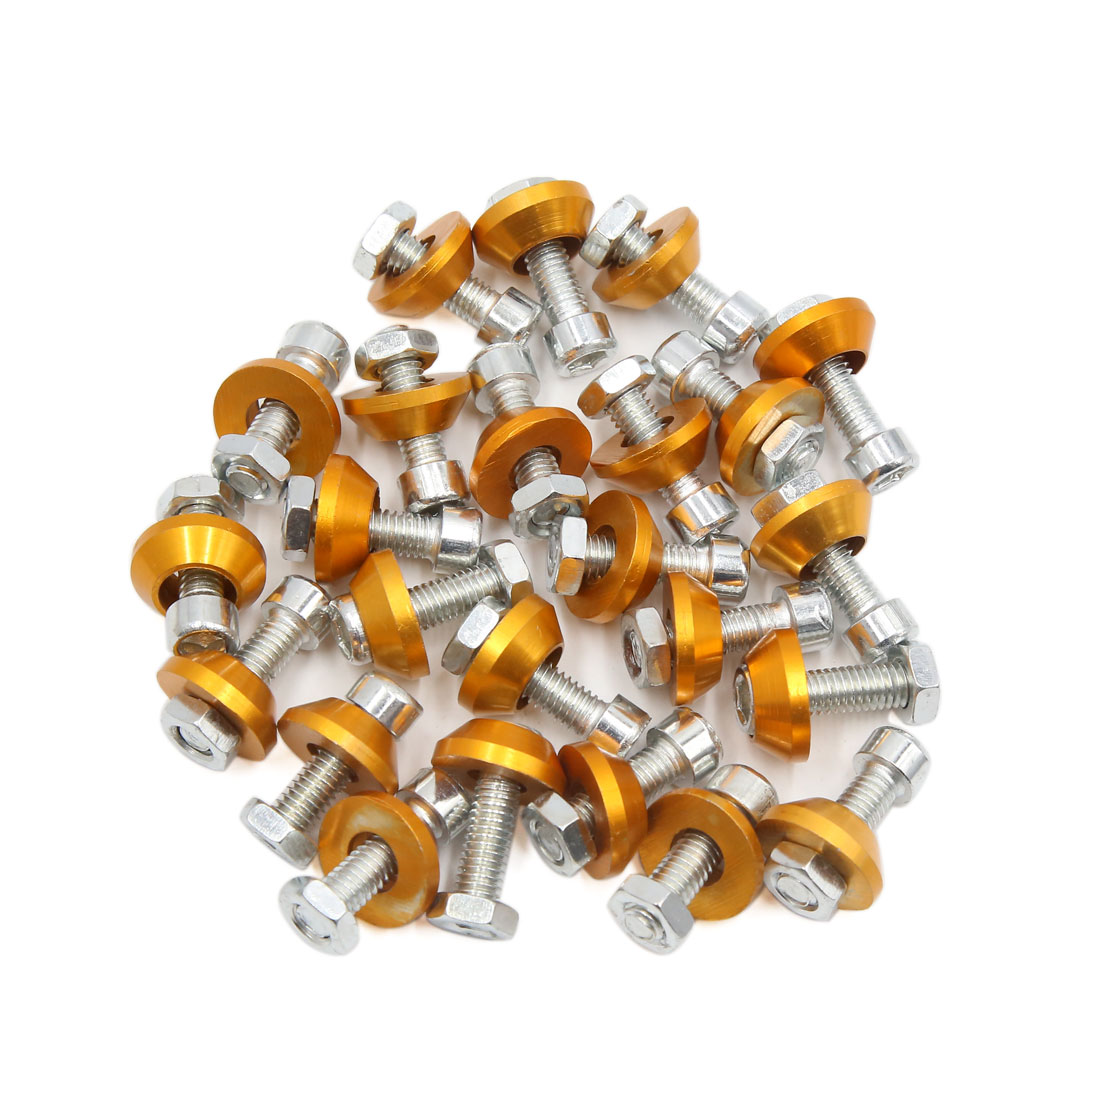 24pcs Gold Tone 6mm Thread Diameter Motorcycle License Plate Frame Screws Bolts Caps